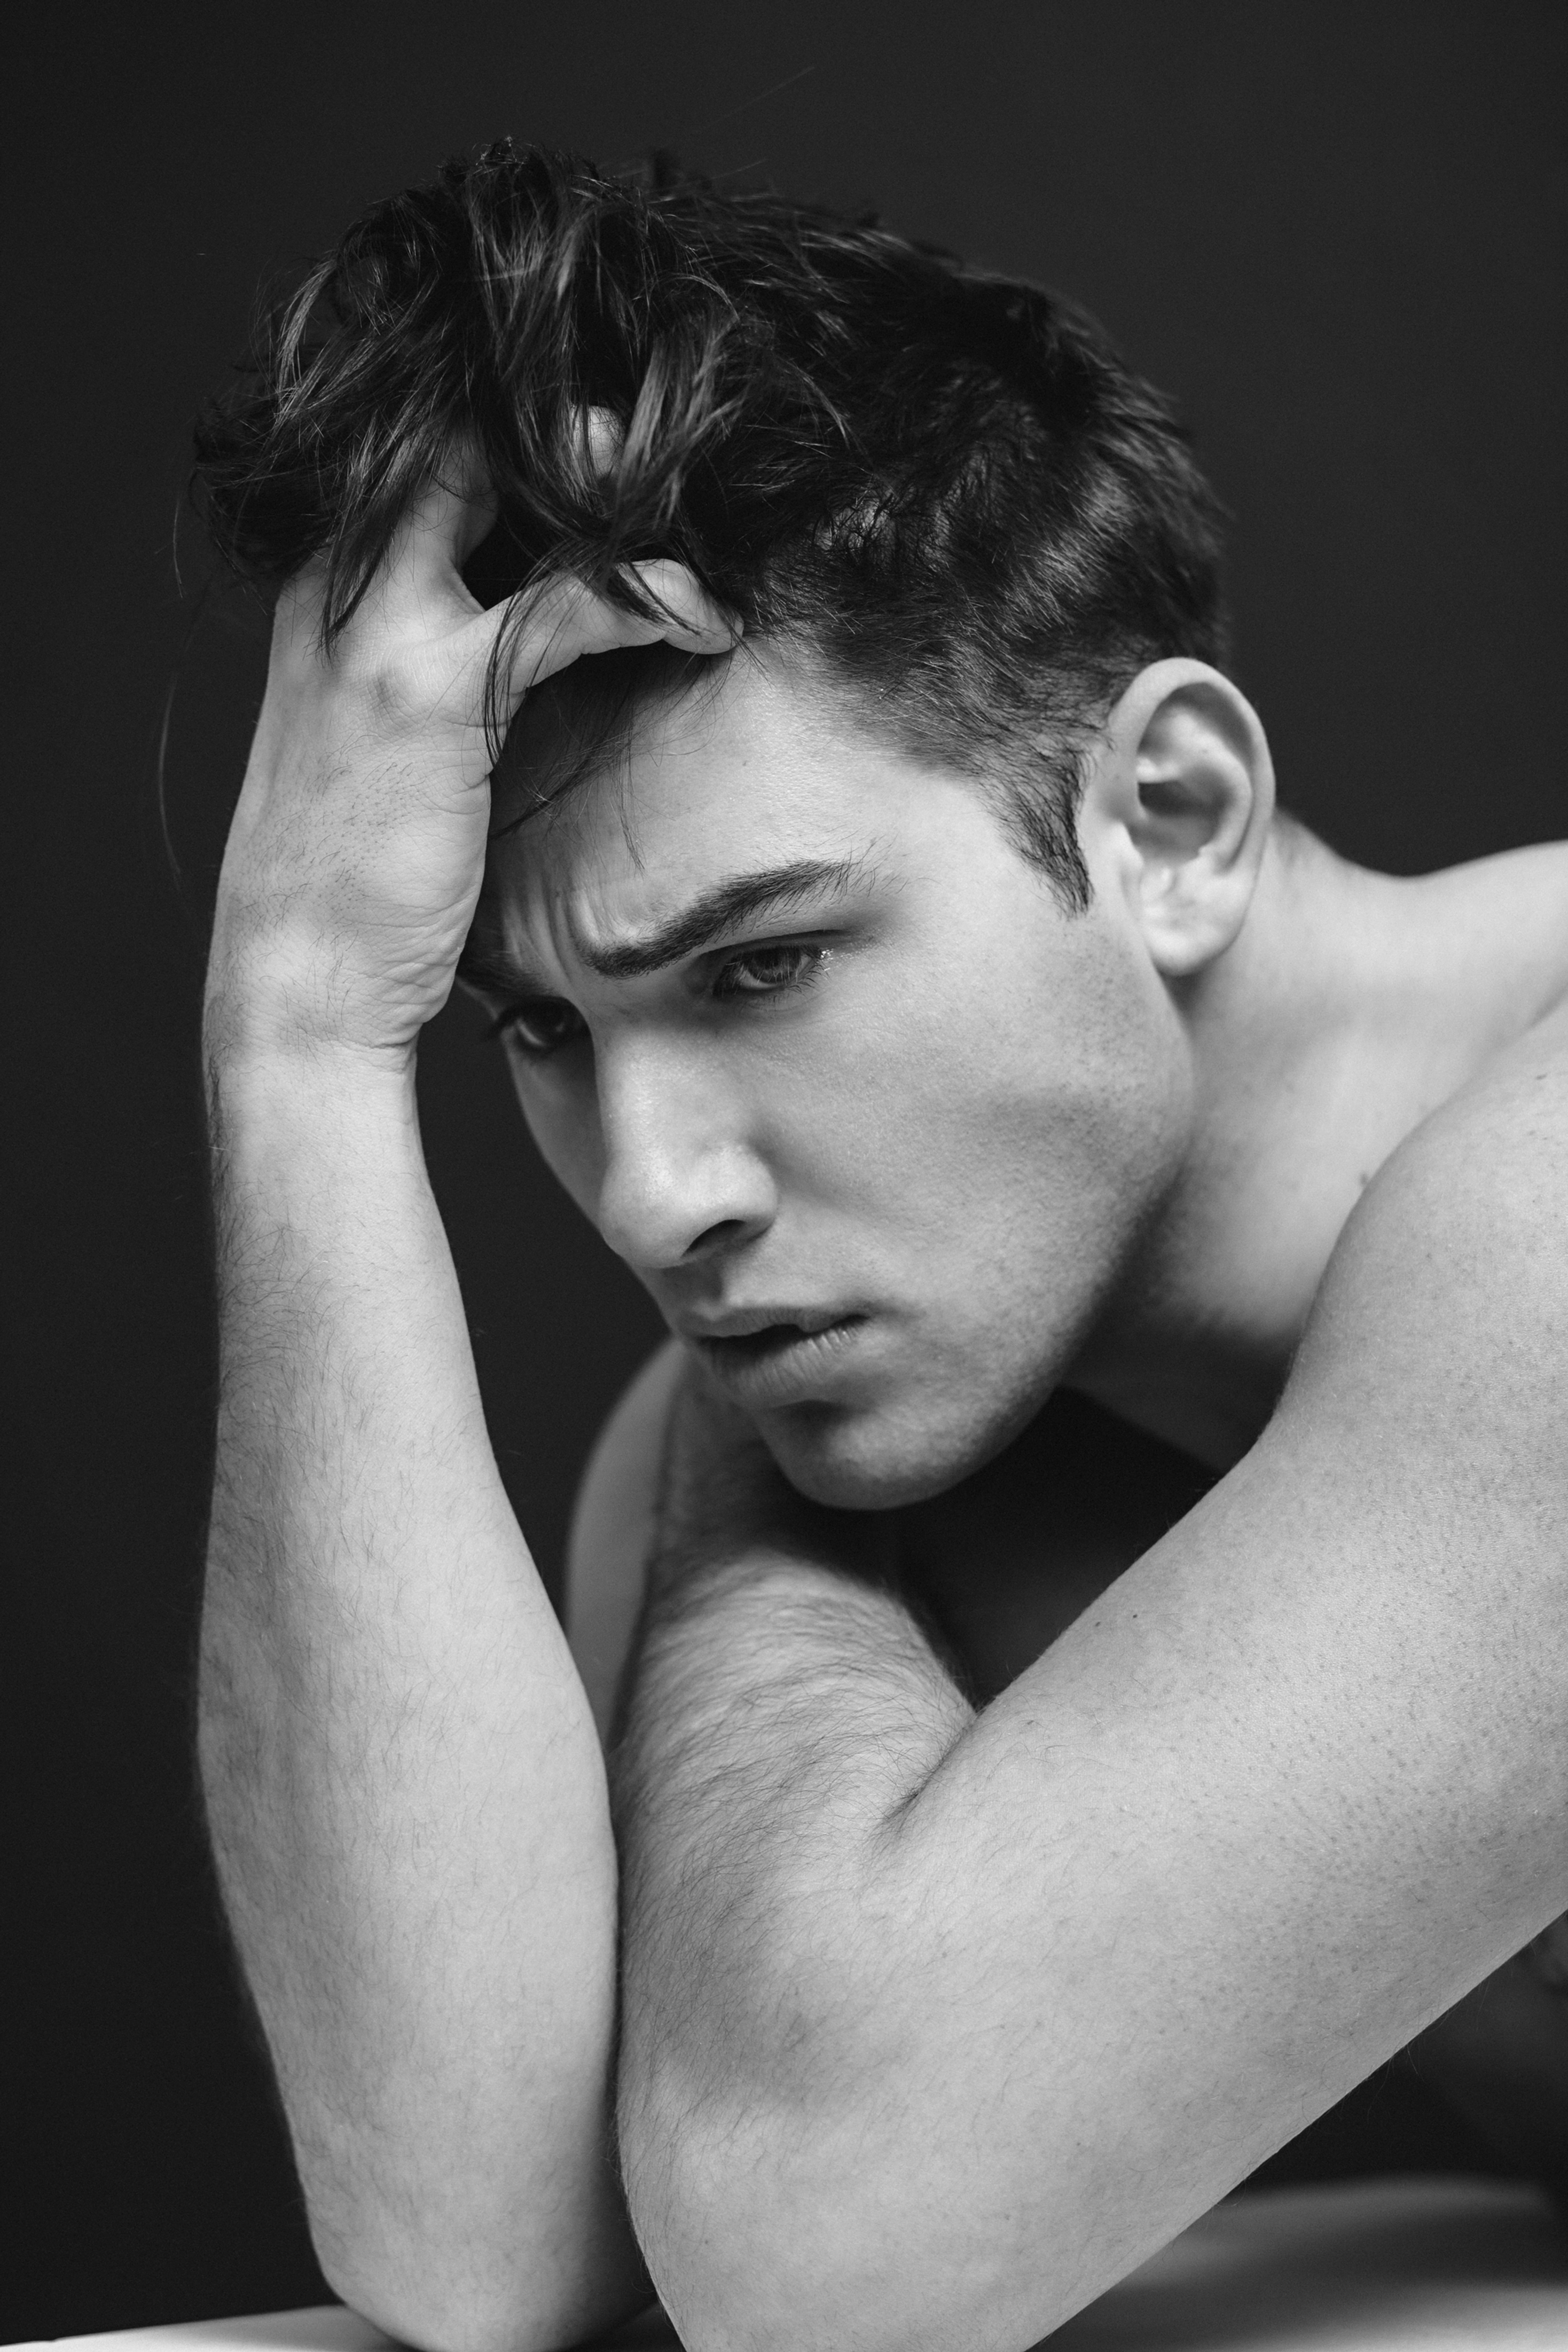 Model Test Shoot with Hannes